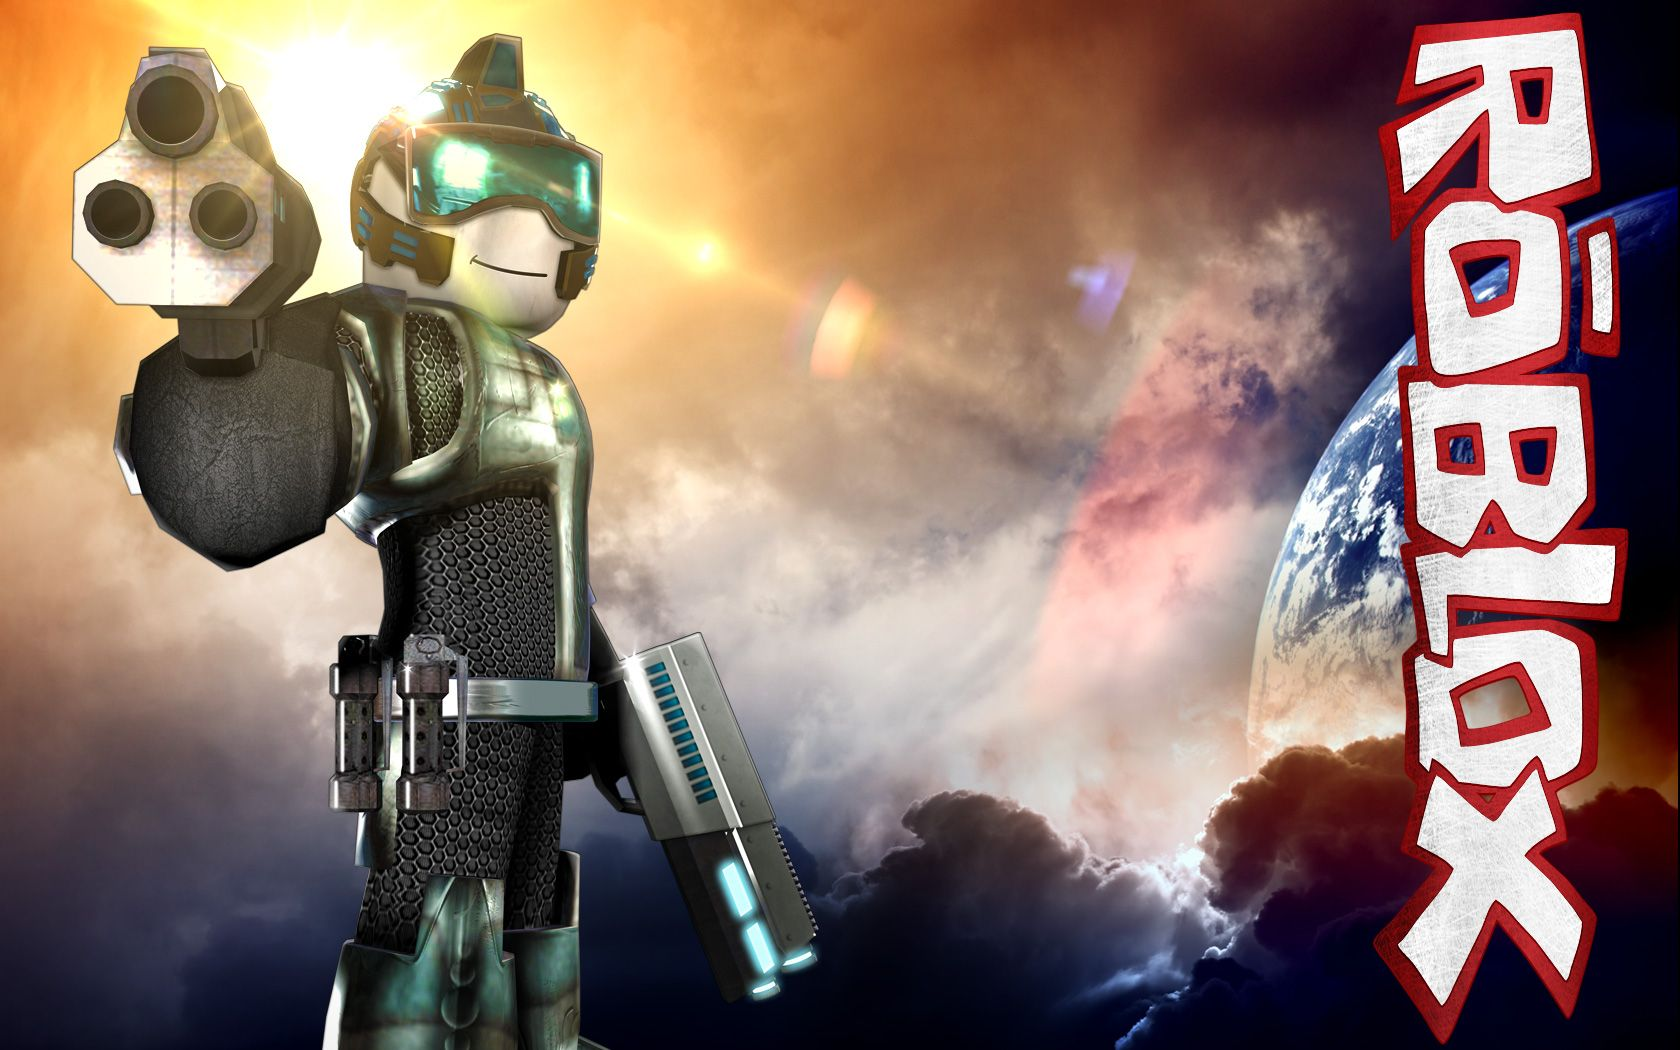 An Awesome Roblox Desktop Roblox Roblox Pictures Roblox Generator